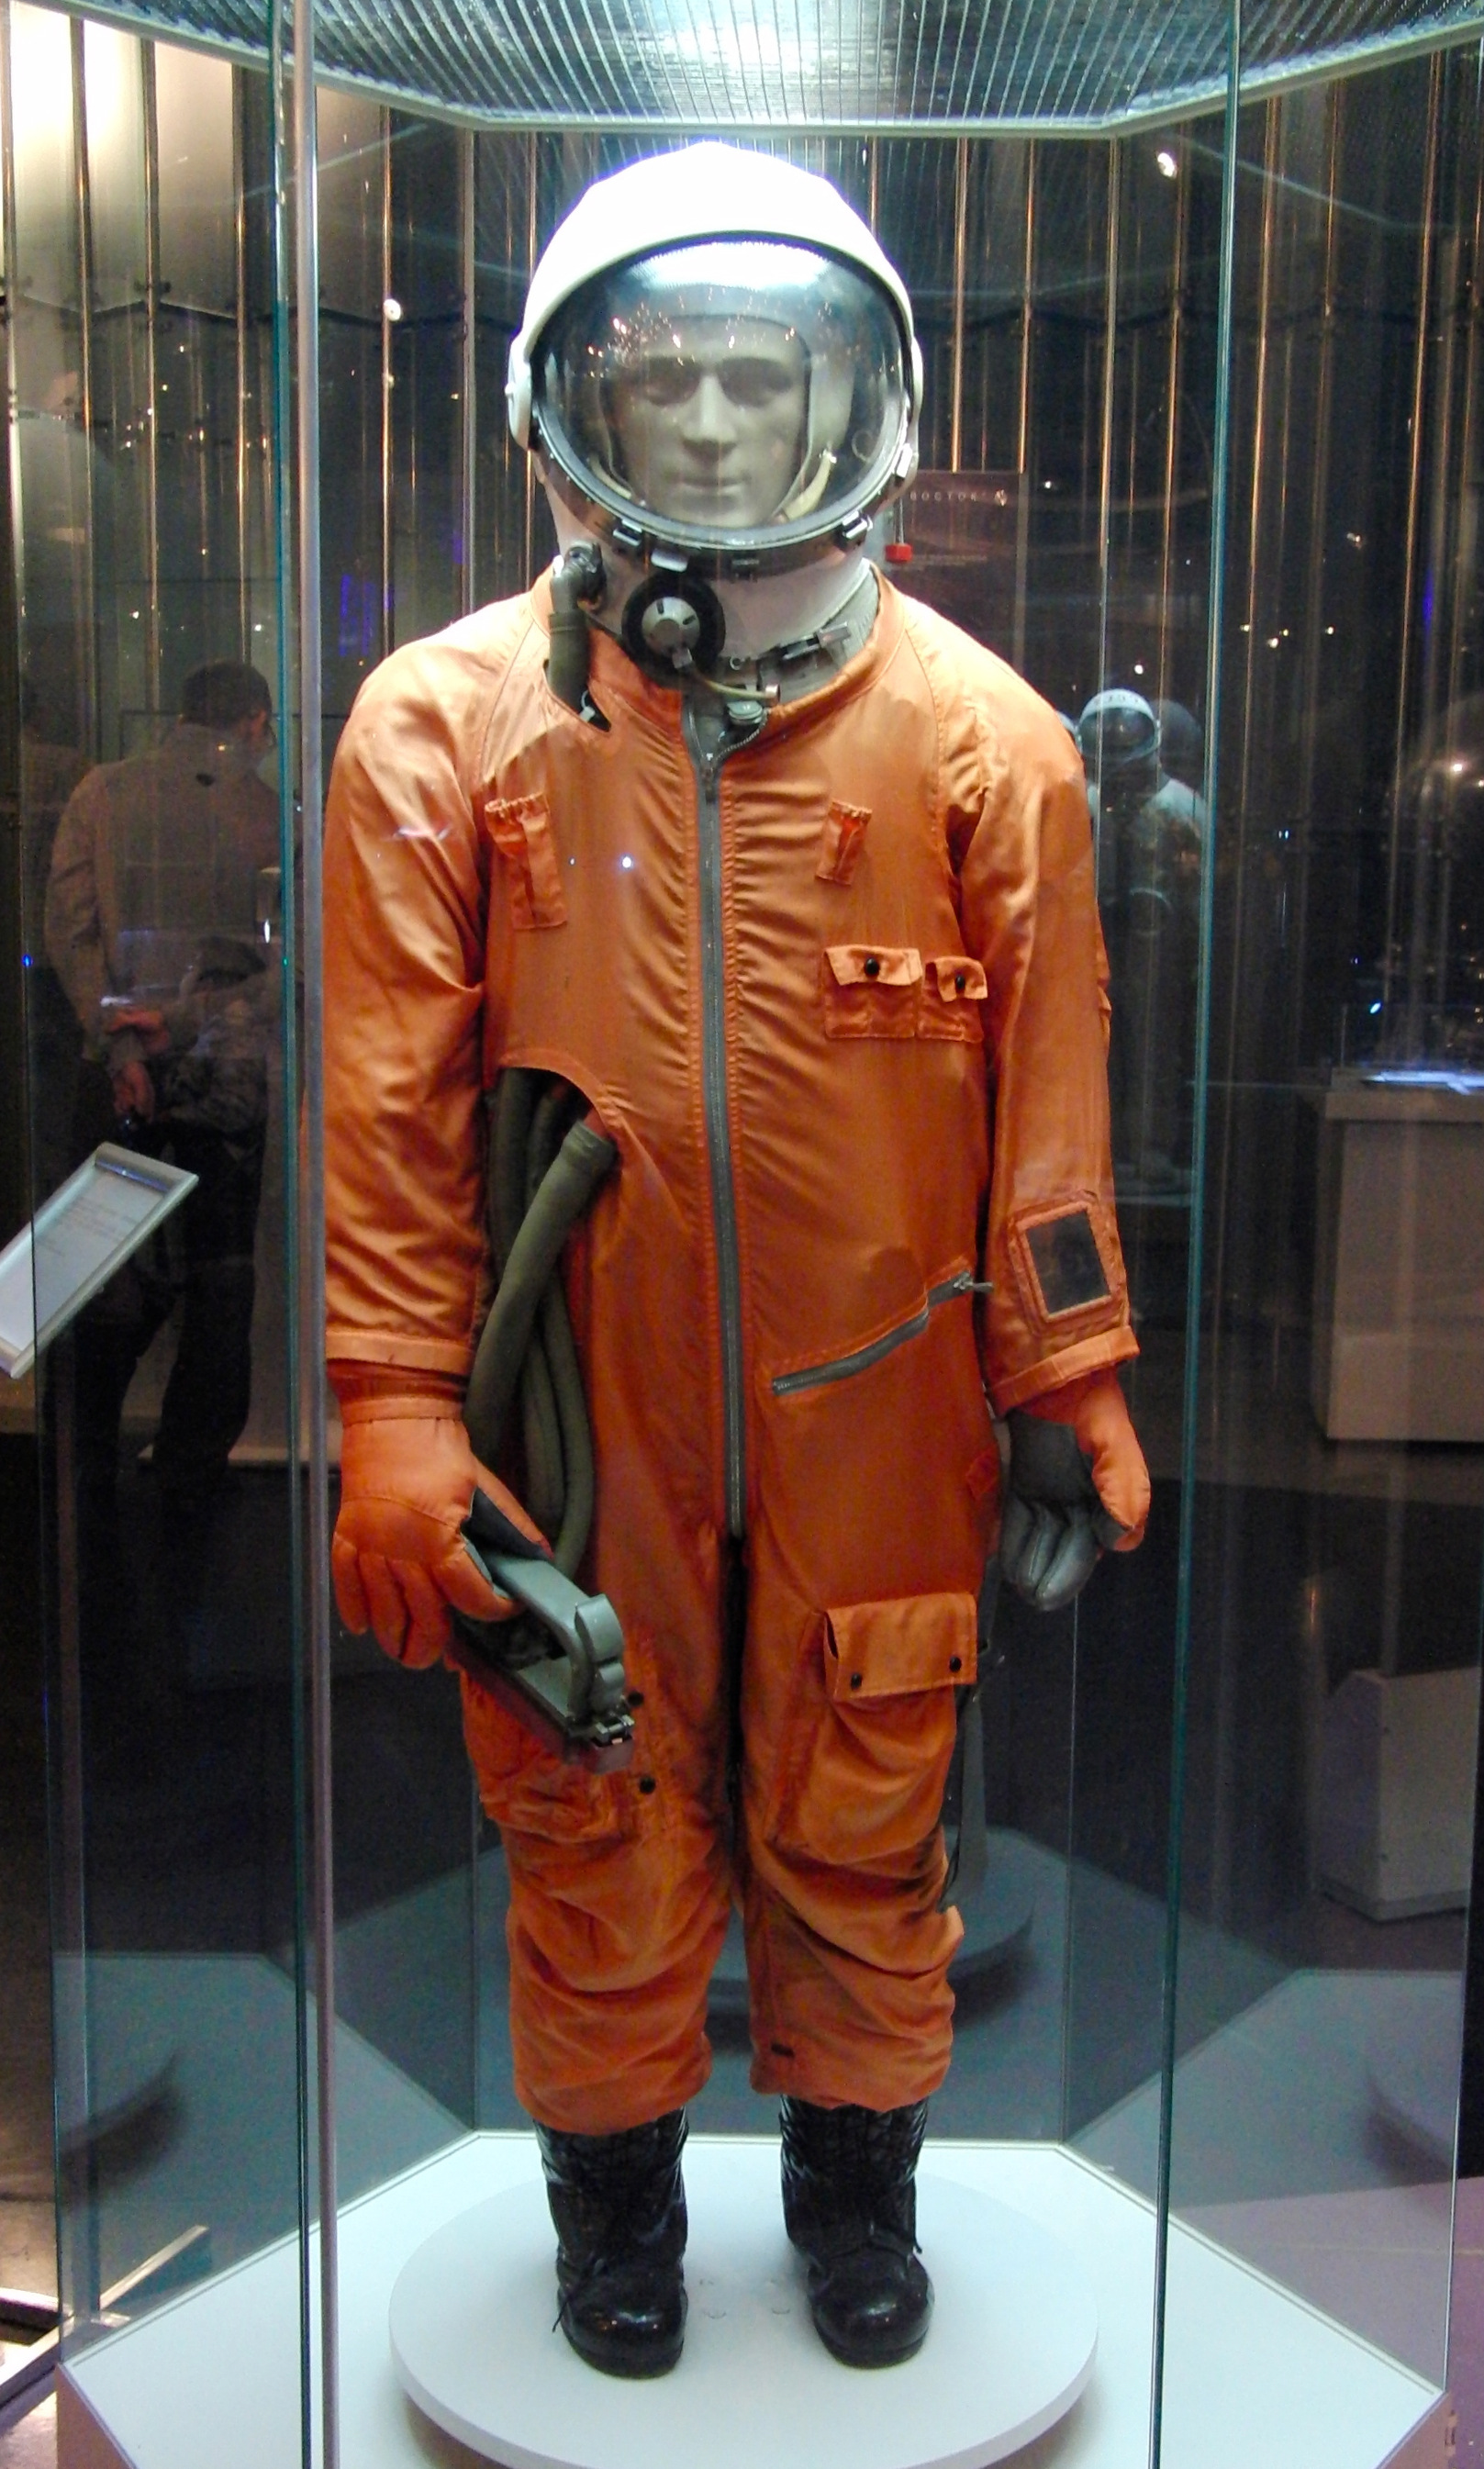 File:Sk-1 spacesuit taken at the Memorial Museum of Space Exploration.jpg -  Wikimedia Commons